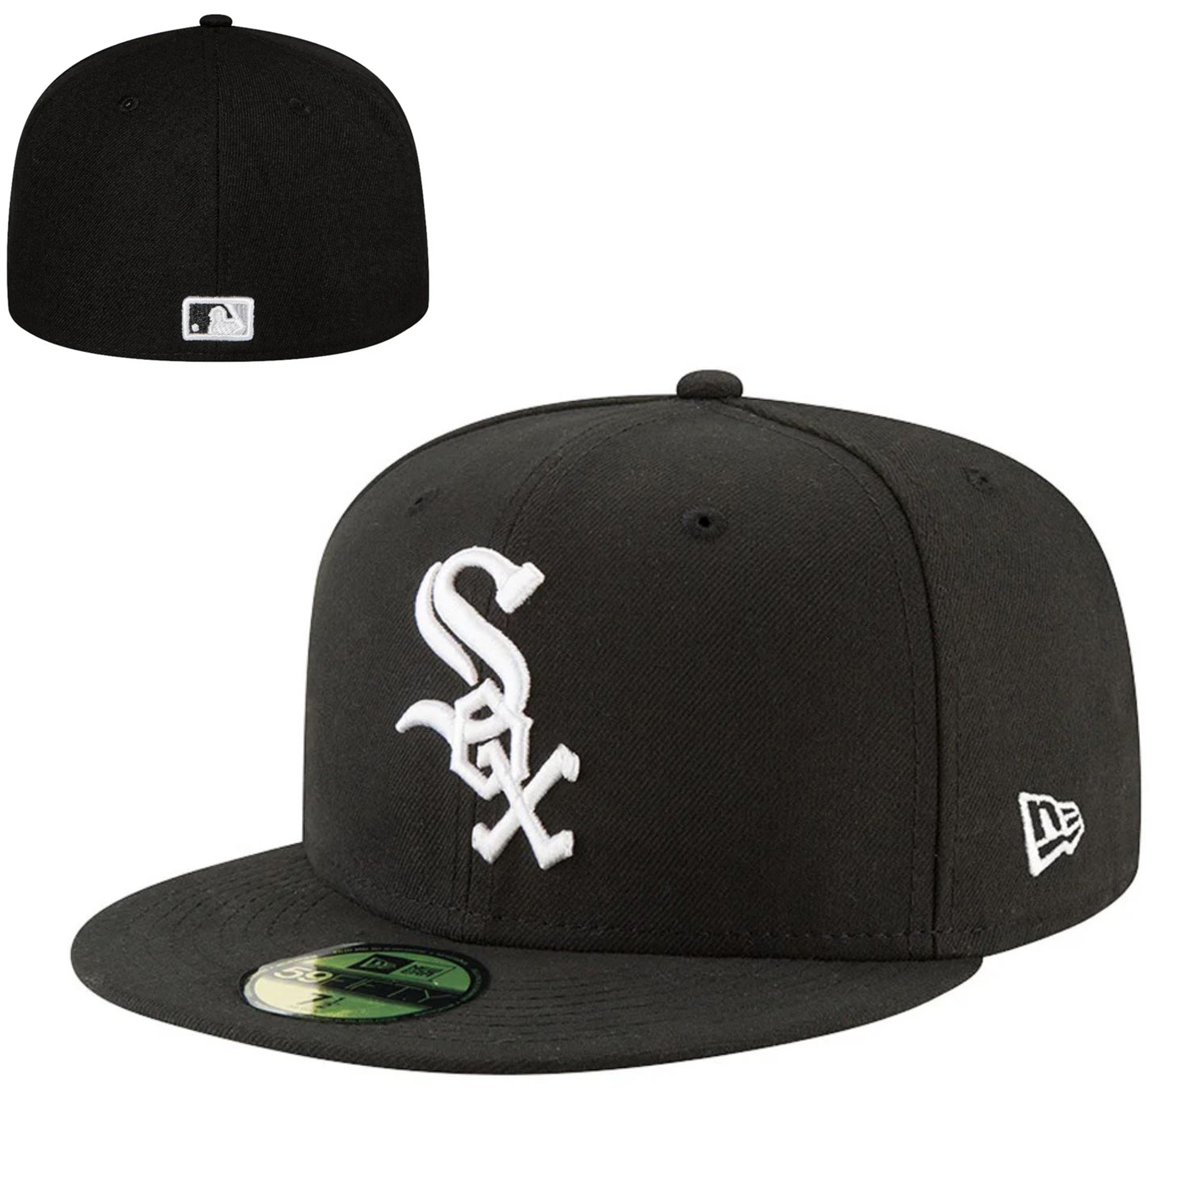 New Era/MLB Chicago White Sox Authentic On-Field Game 59FIFTY